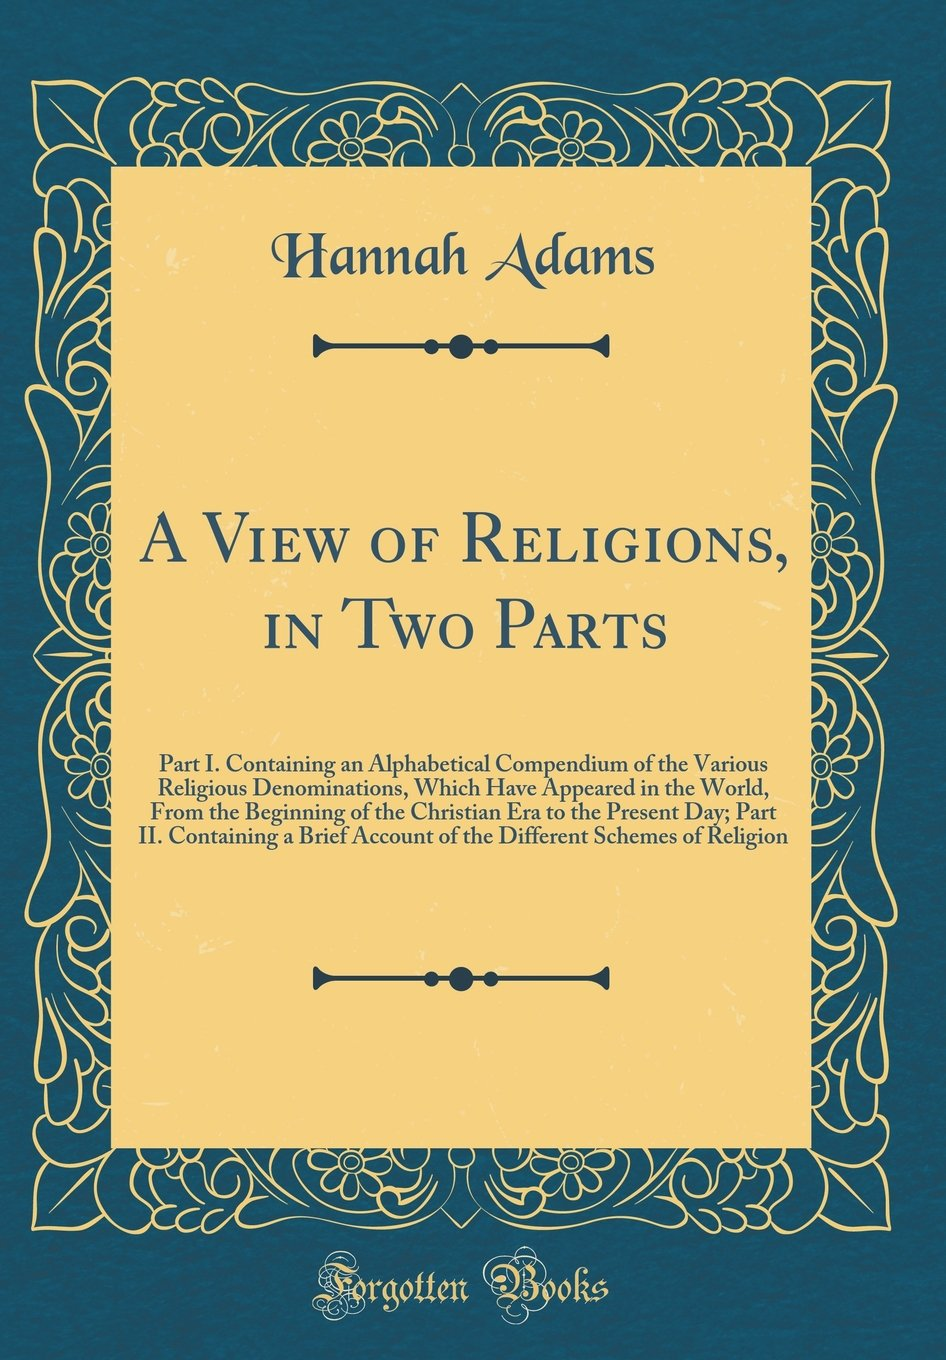 A View of Religions, in Two Parts: Part I. Containing an Alphabetical Compendium of the Various Religious Denominations, Which Have Appeared in the ... Day; Part II. Containing a Brief Account of t pdf epub